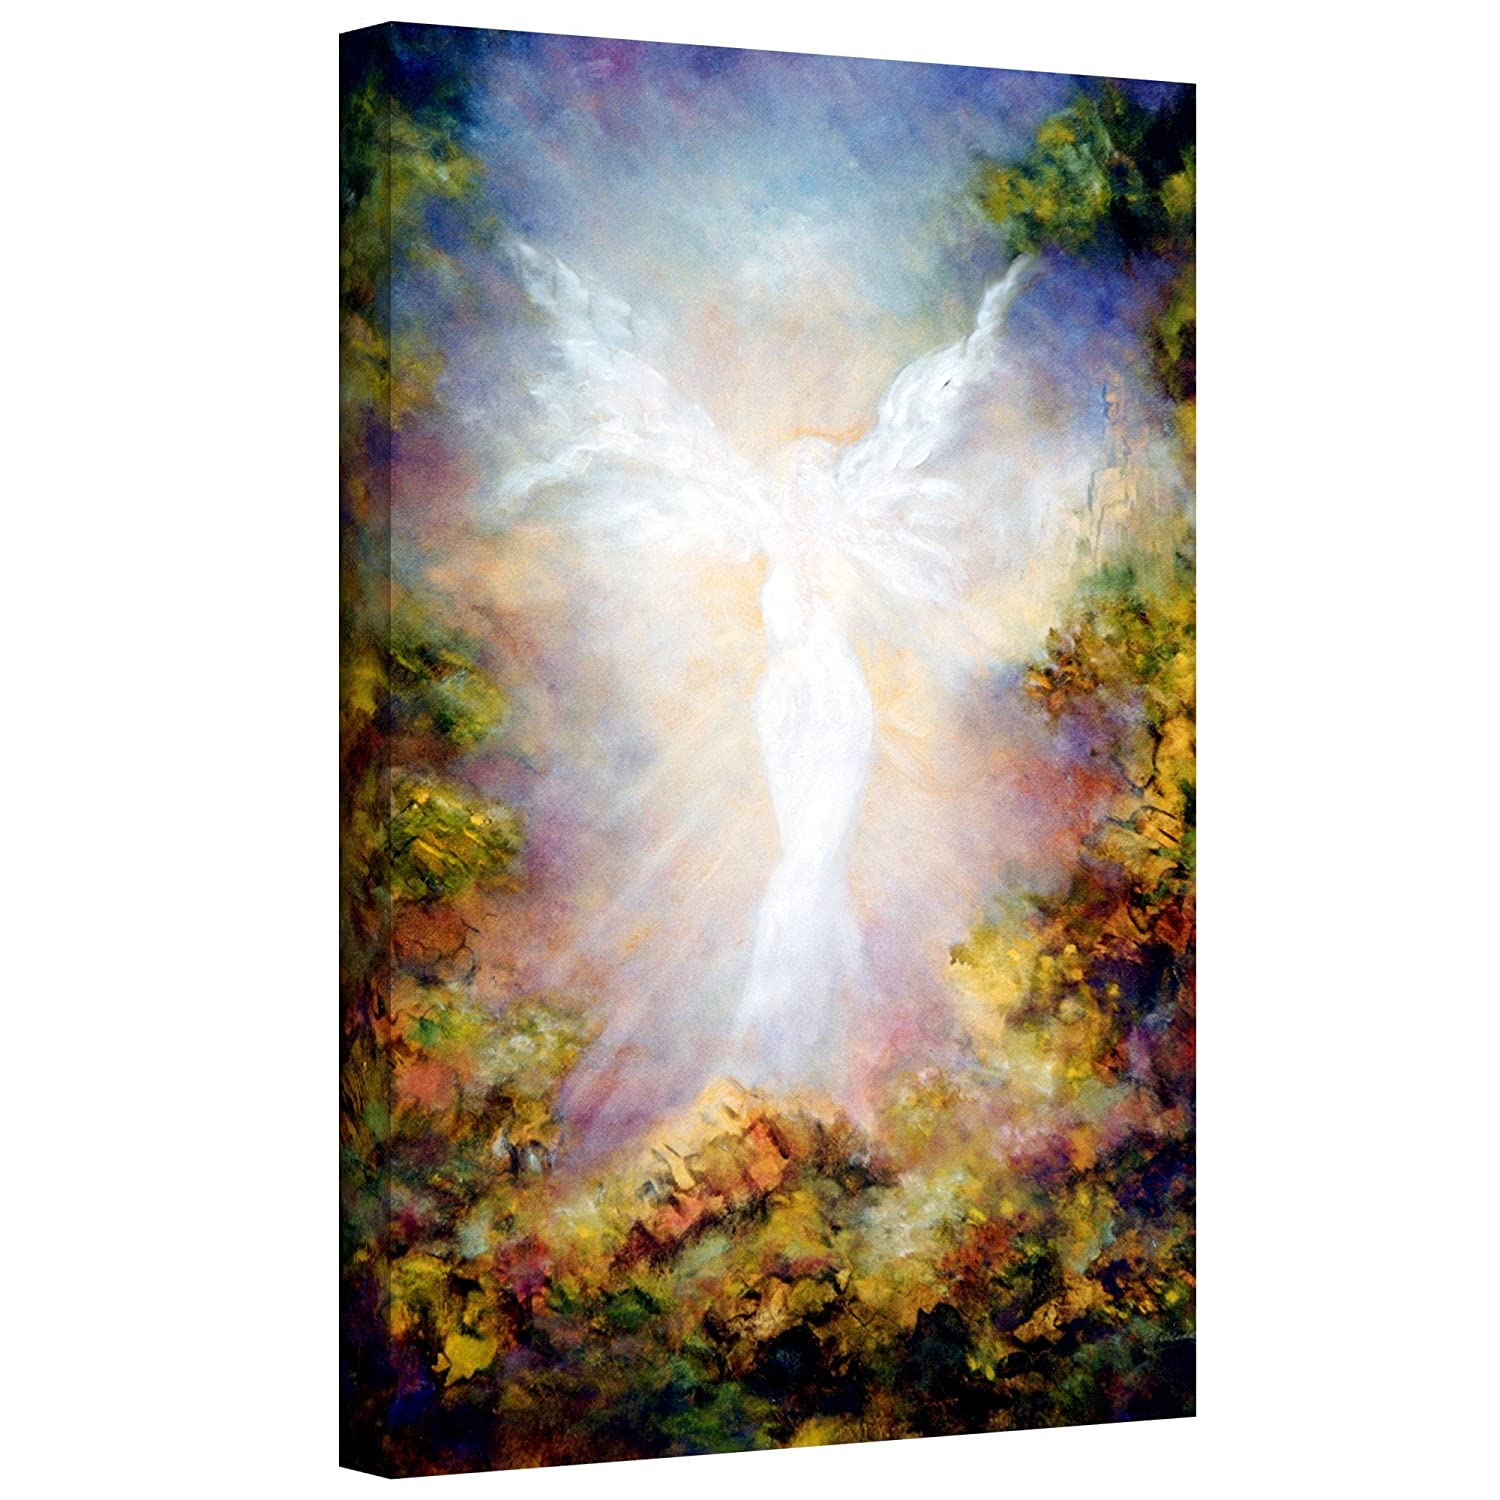 18 by 12-Inch ArtWall Apparition Gallery Wrapped Canvas Art by Marina Petro